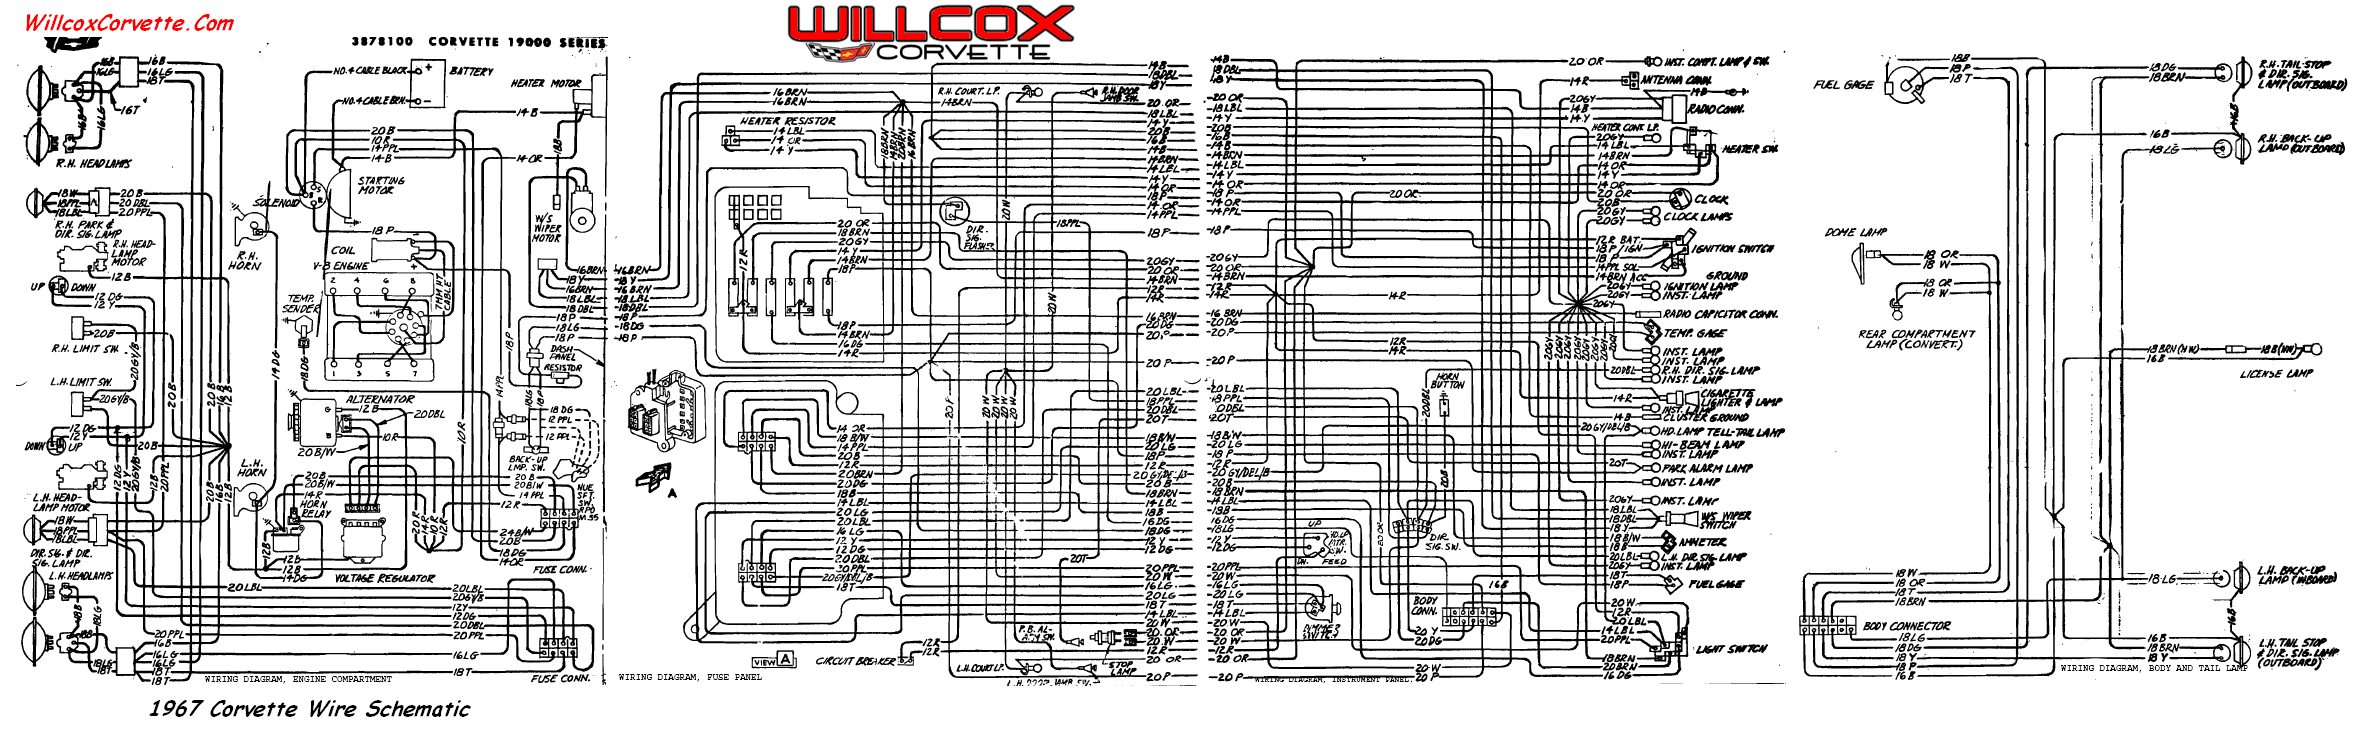 1974 Corvette Starter Wiring Diagram - 5.11.geuzencollege ... on